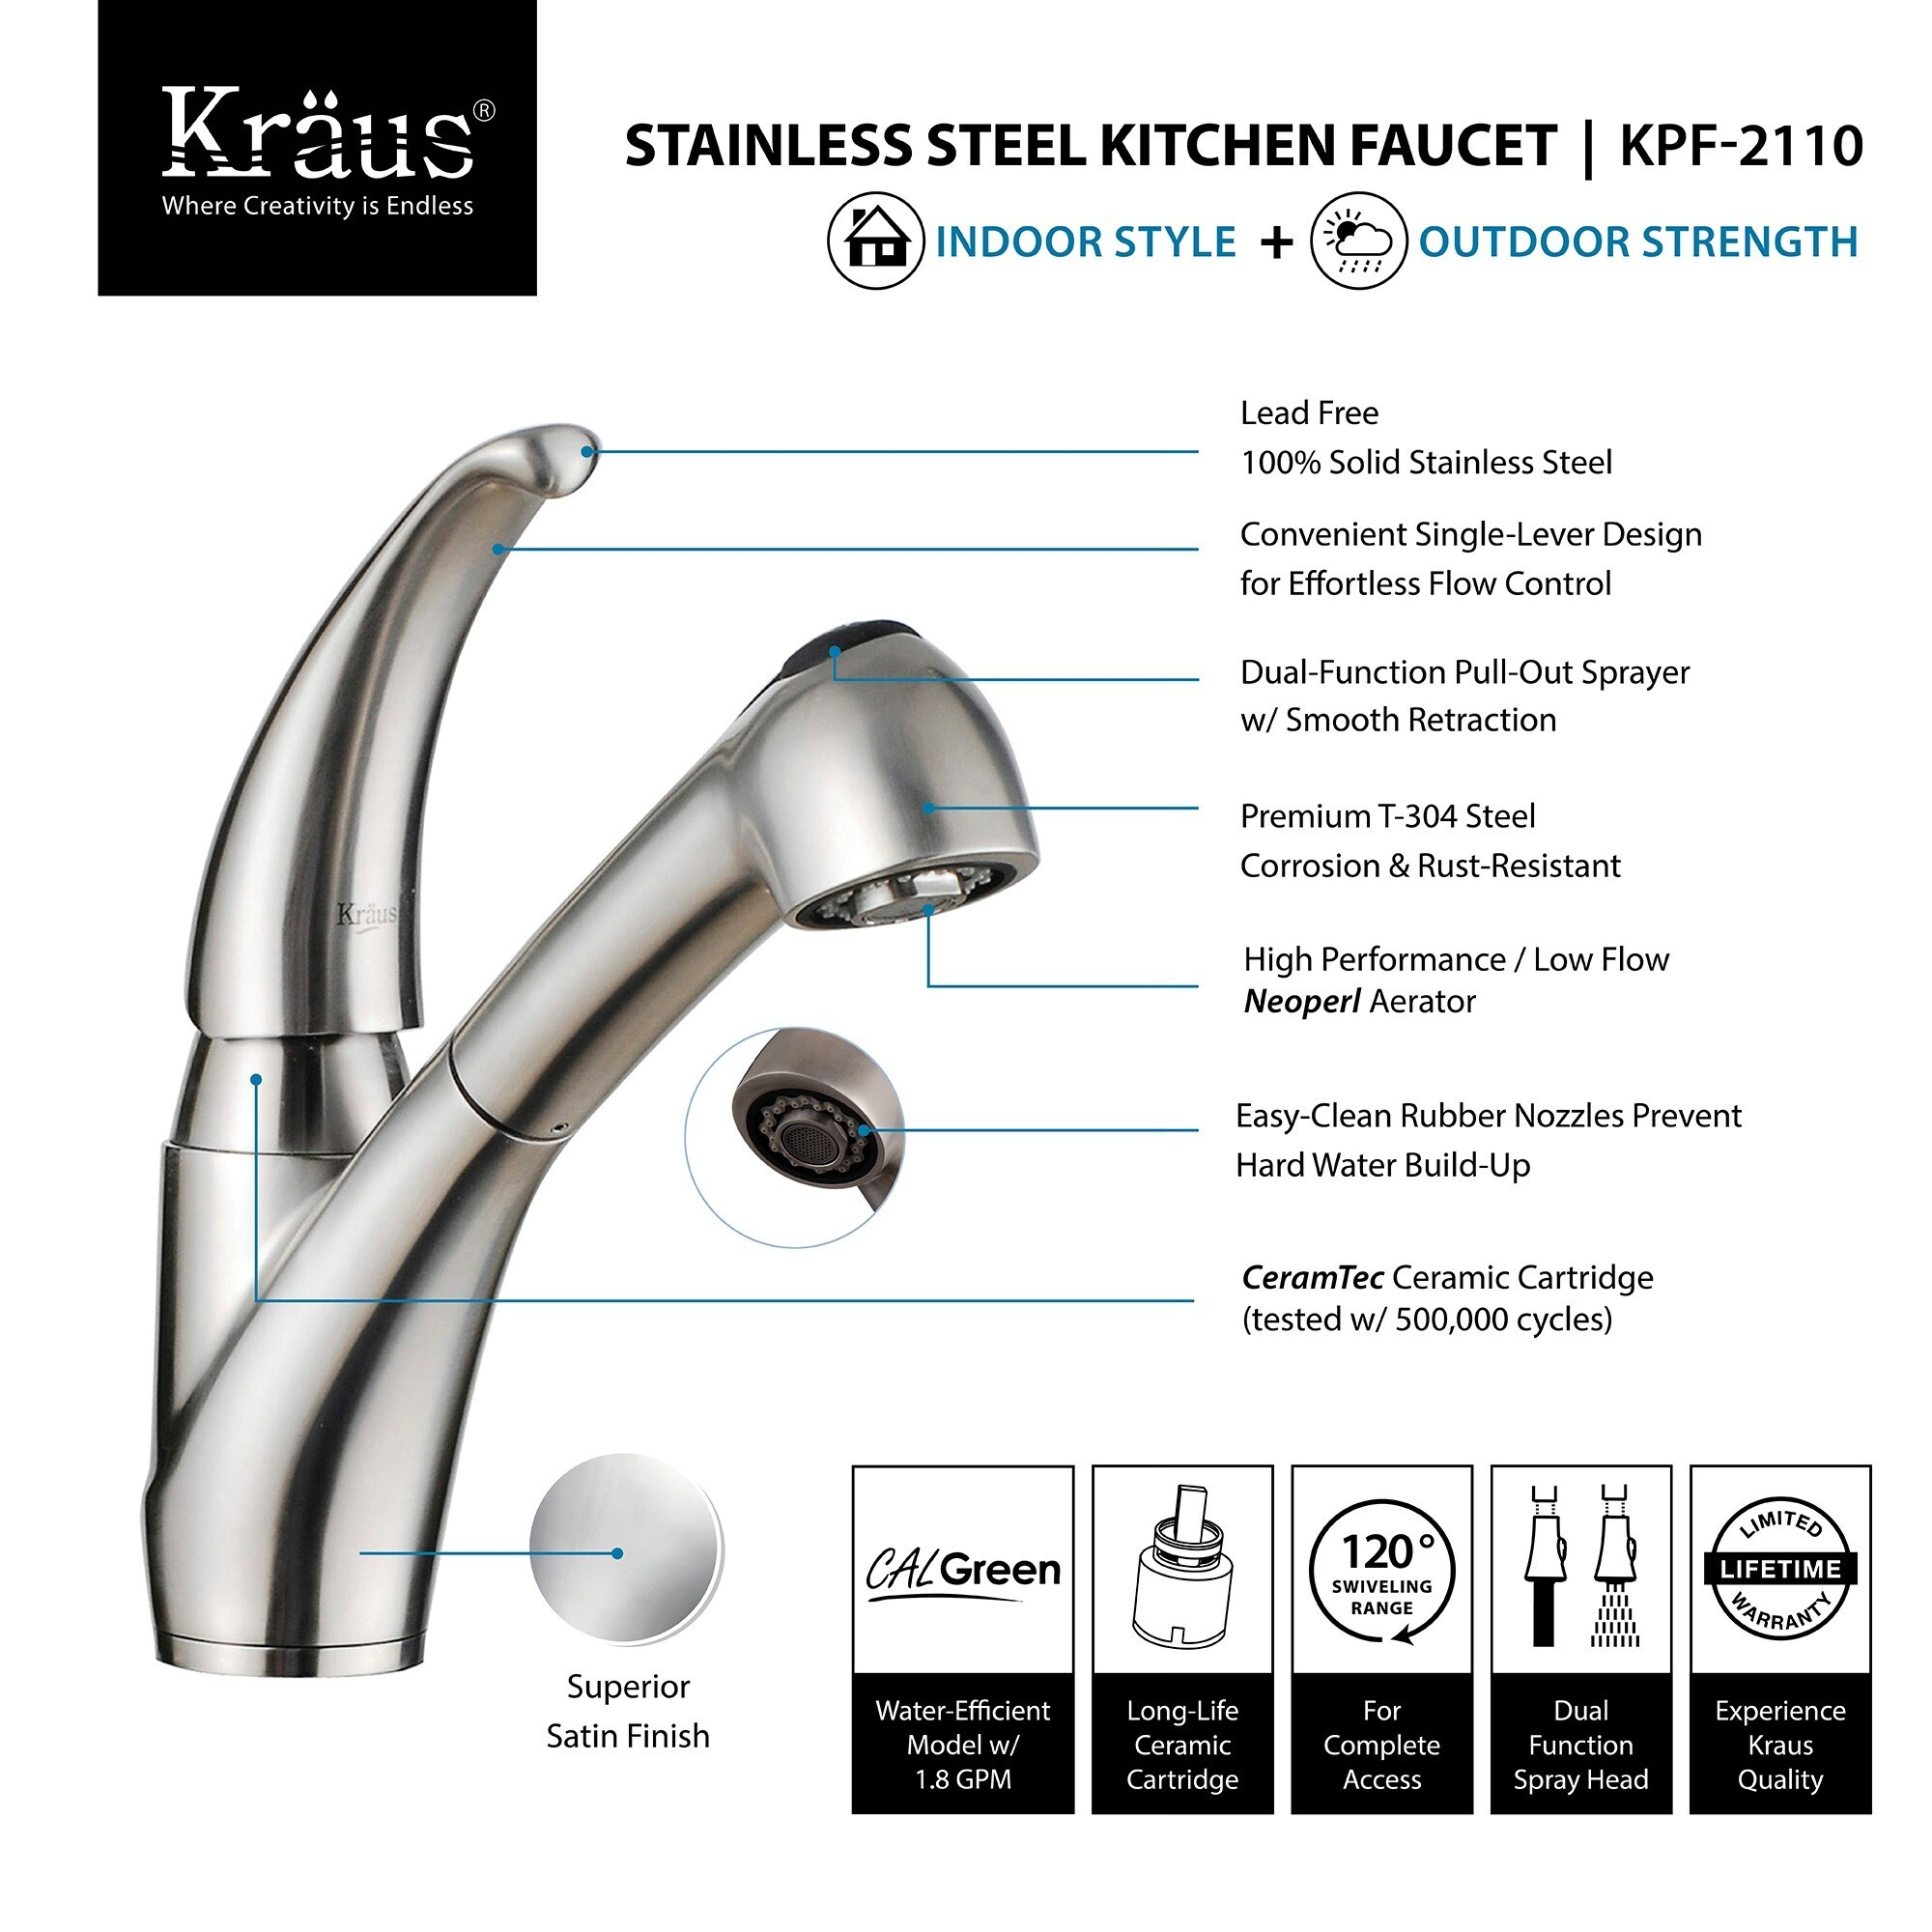 splendid kitchen tubs dispenser full faucet sink and handle double water arc sprayer banbury out polished hot moen fabulous furniture modern of low pull faucets size chrome